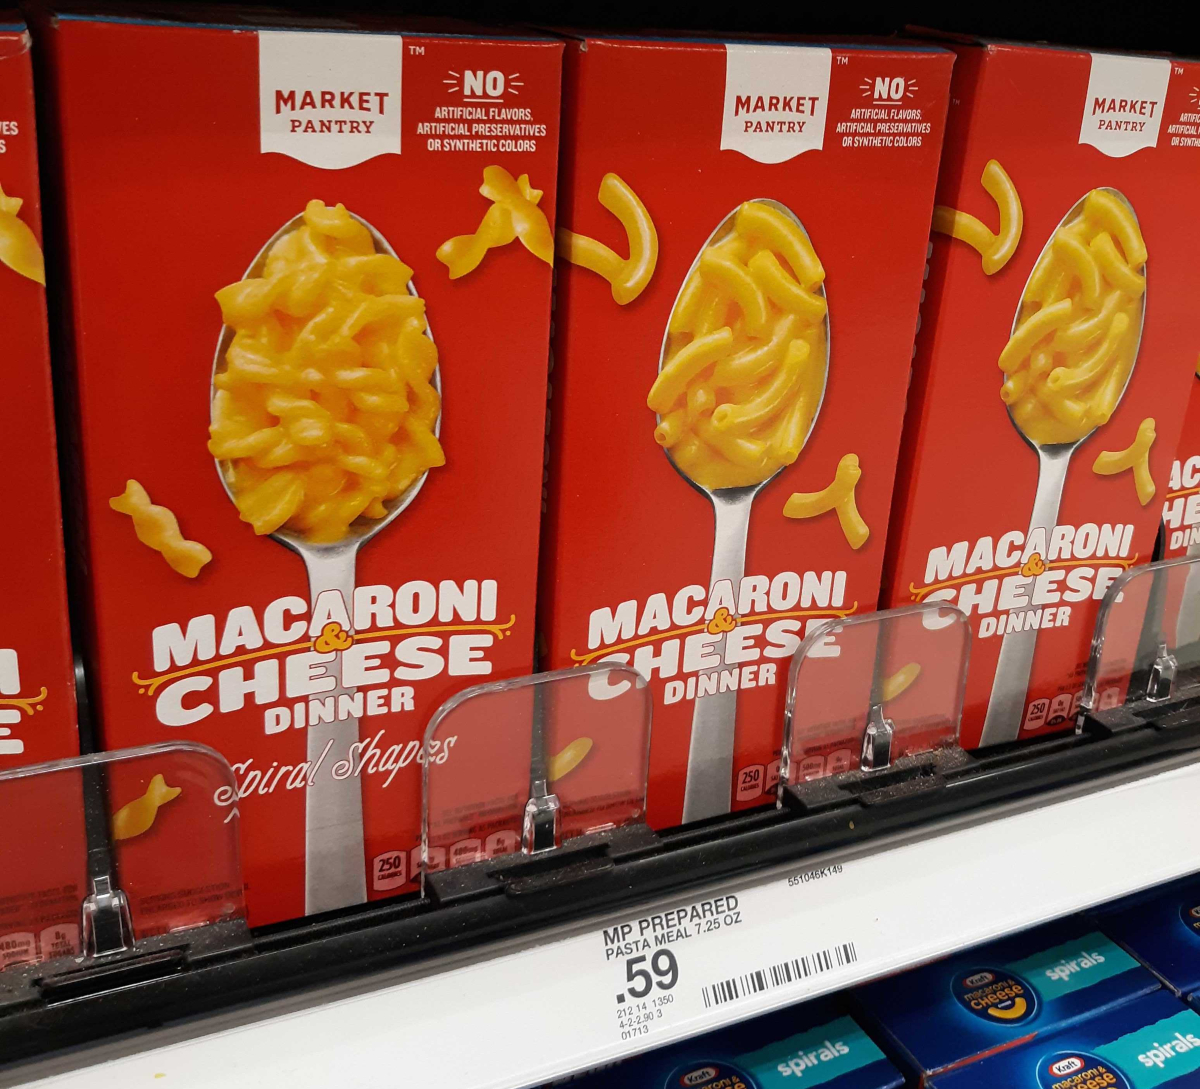 Market Pantry macaroni and cheese boxes at Target